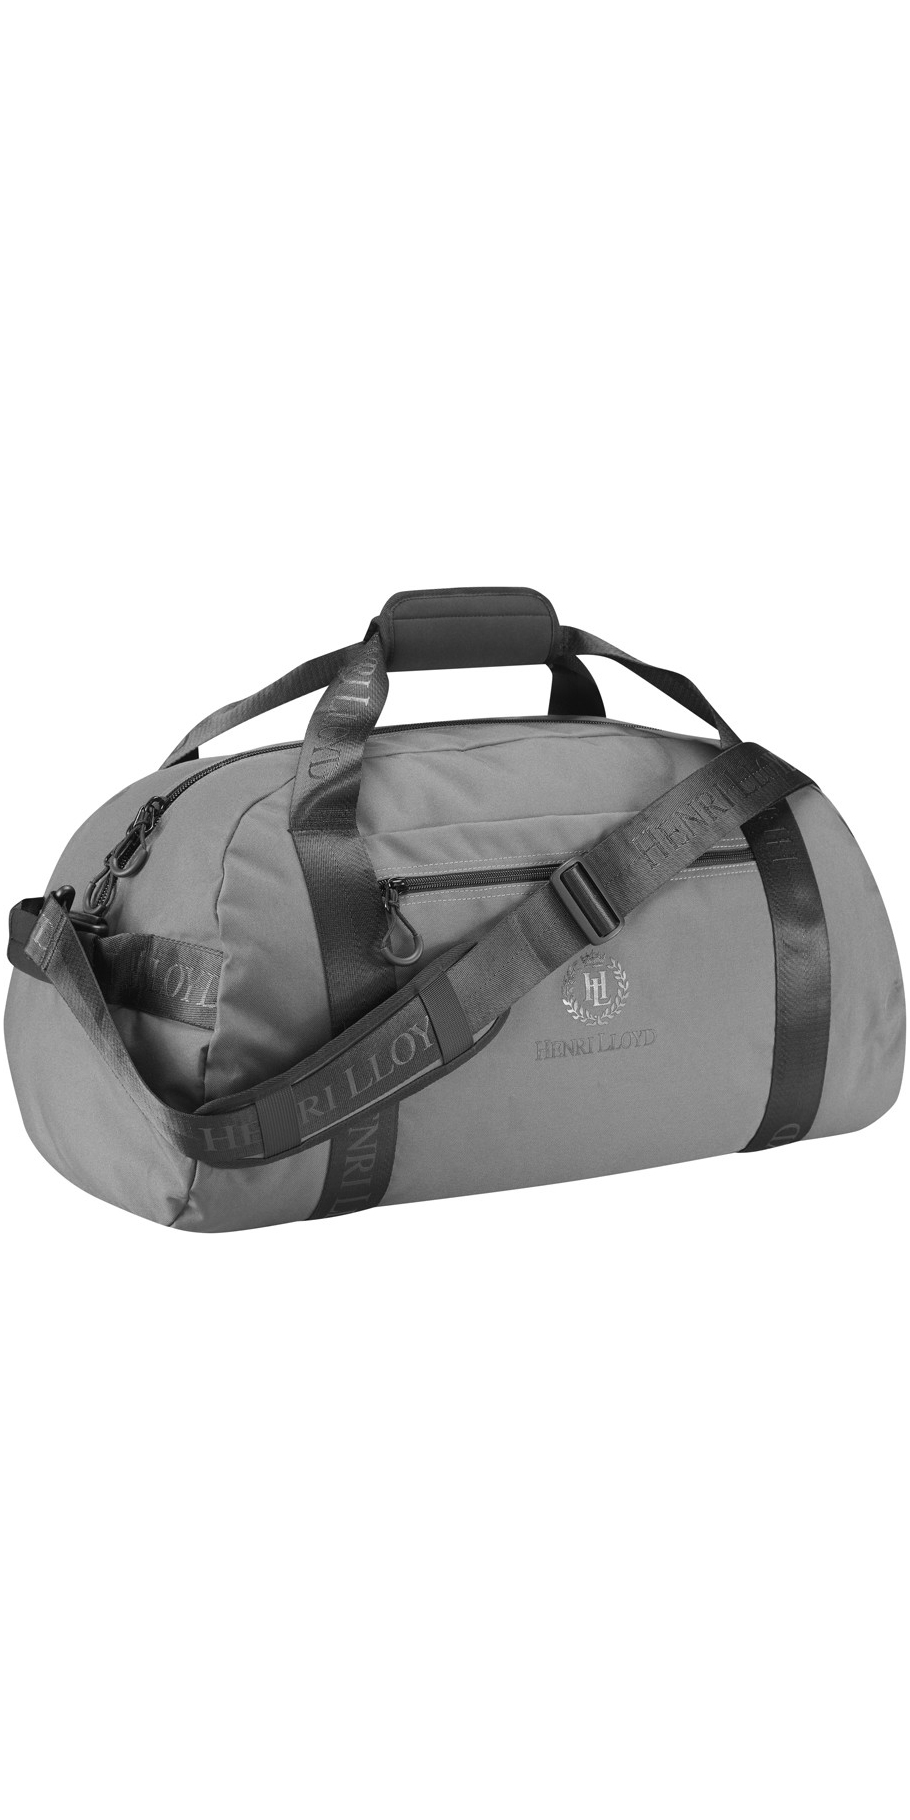 2018 Henri Lloyd Breeze 50L Packaway Holdall GREY Y55115